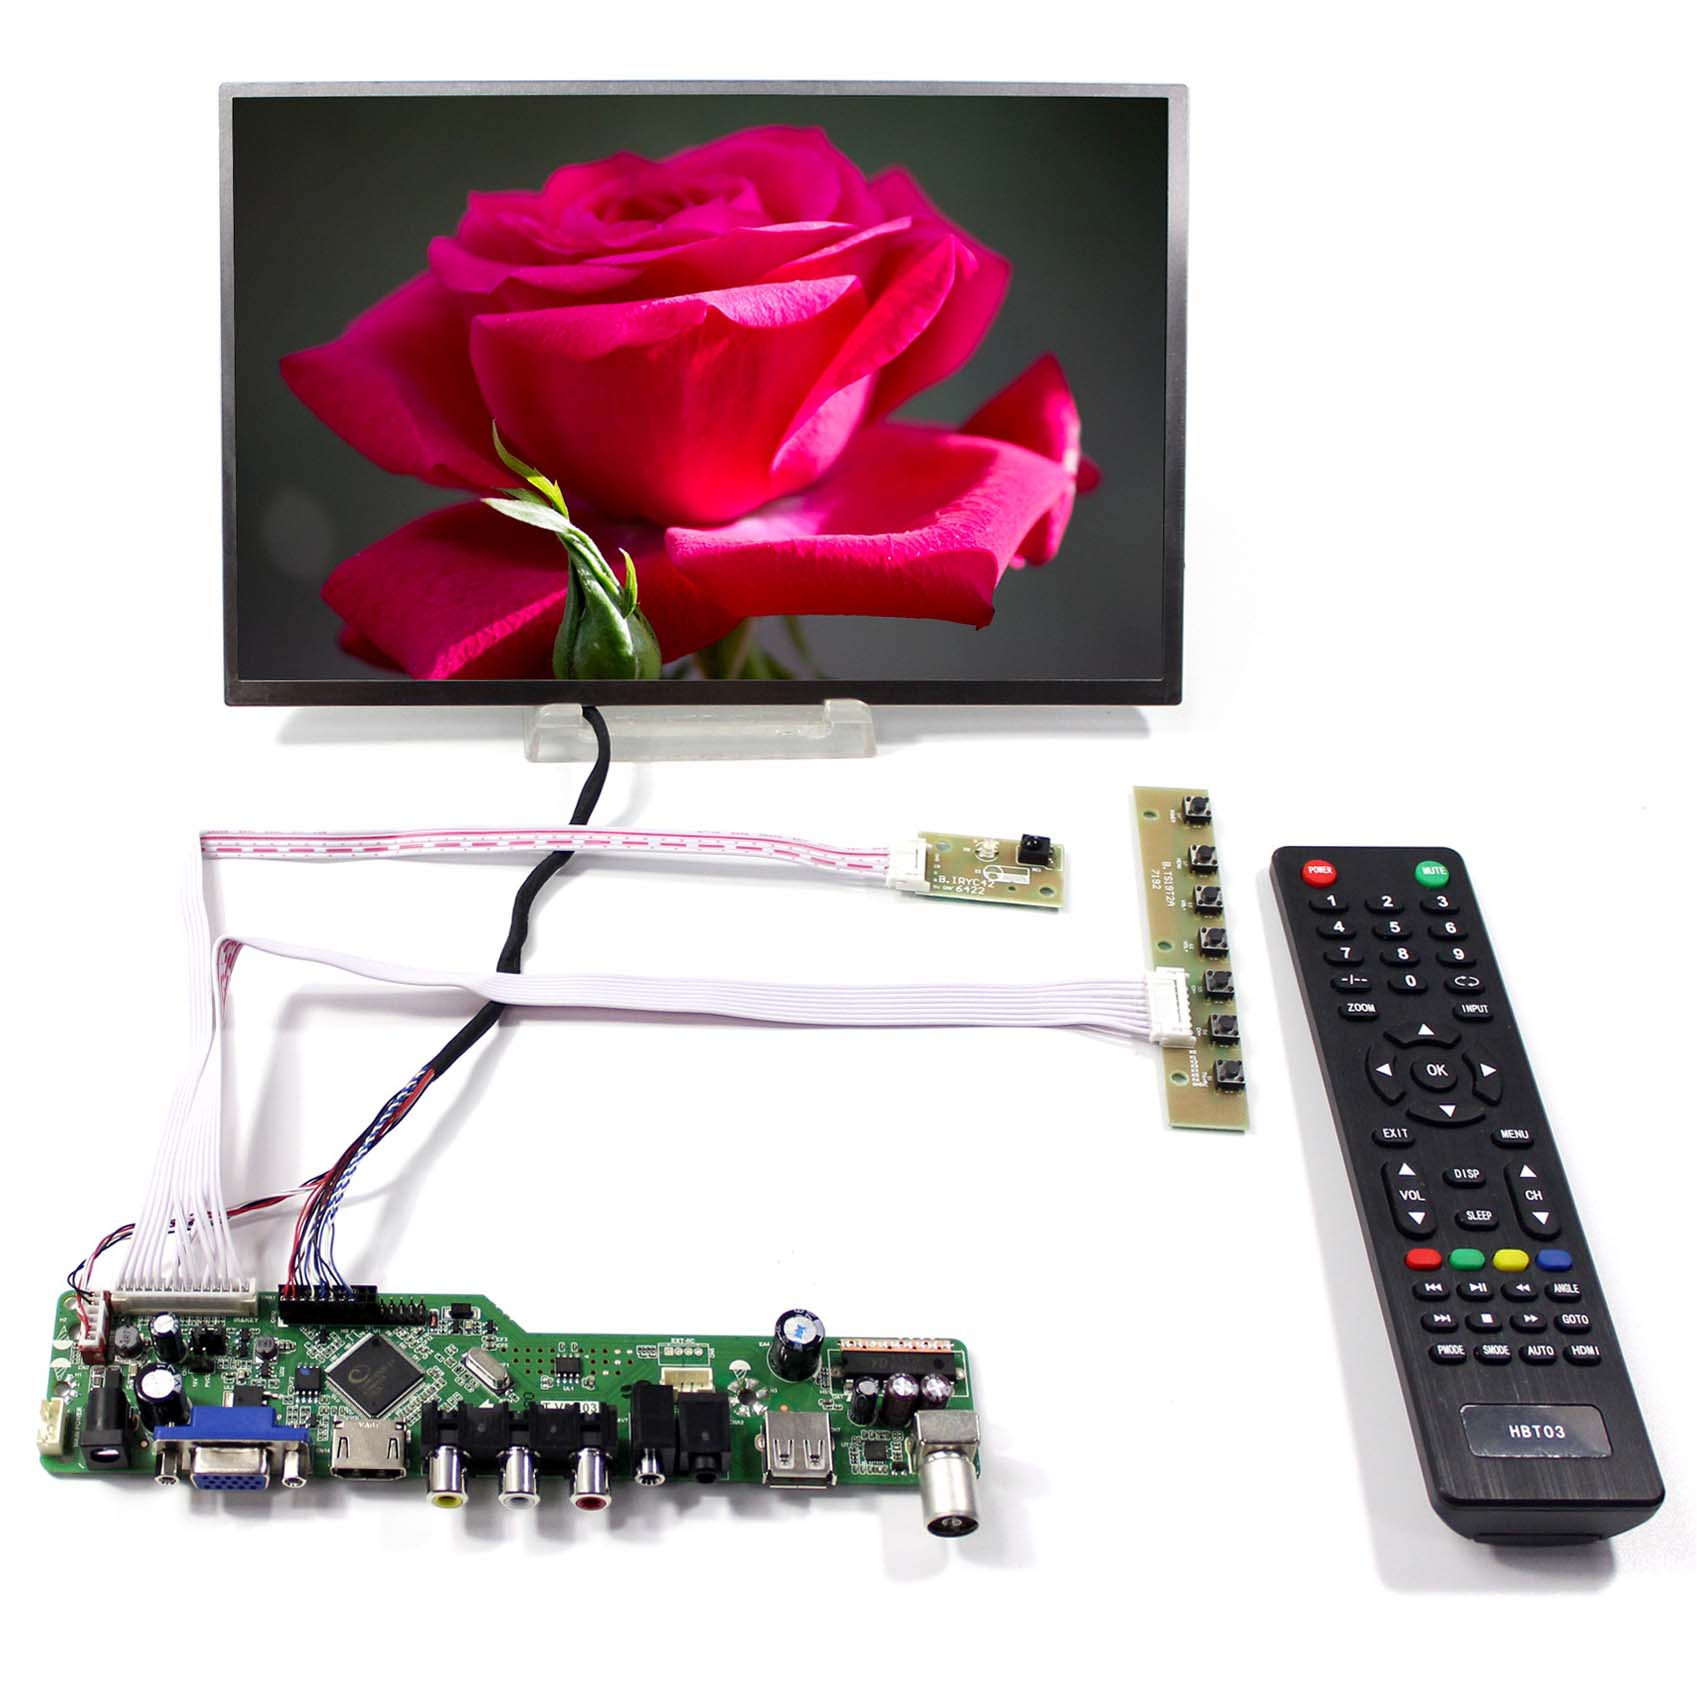 TV HDMI VGA AV USB LCD Driver Board With 10.1inch B101EW05 1280x800 LCD Screen tv driver board hx v29 39 l